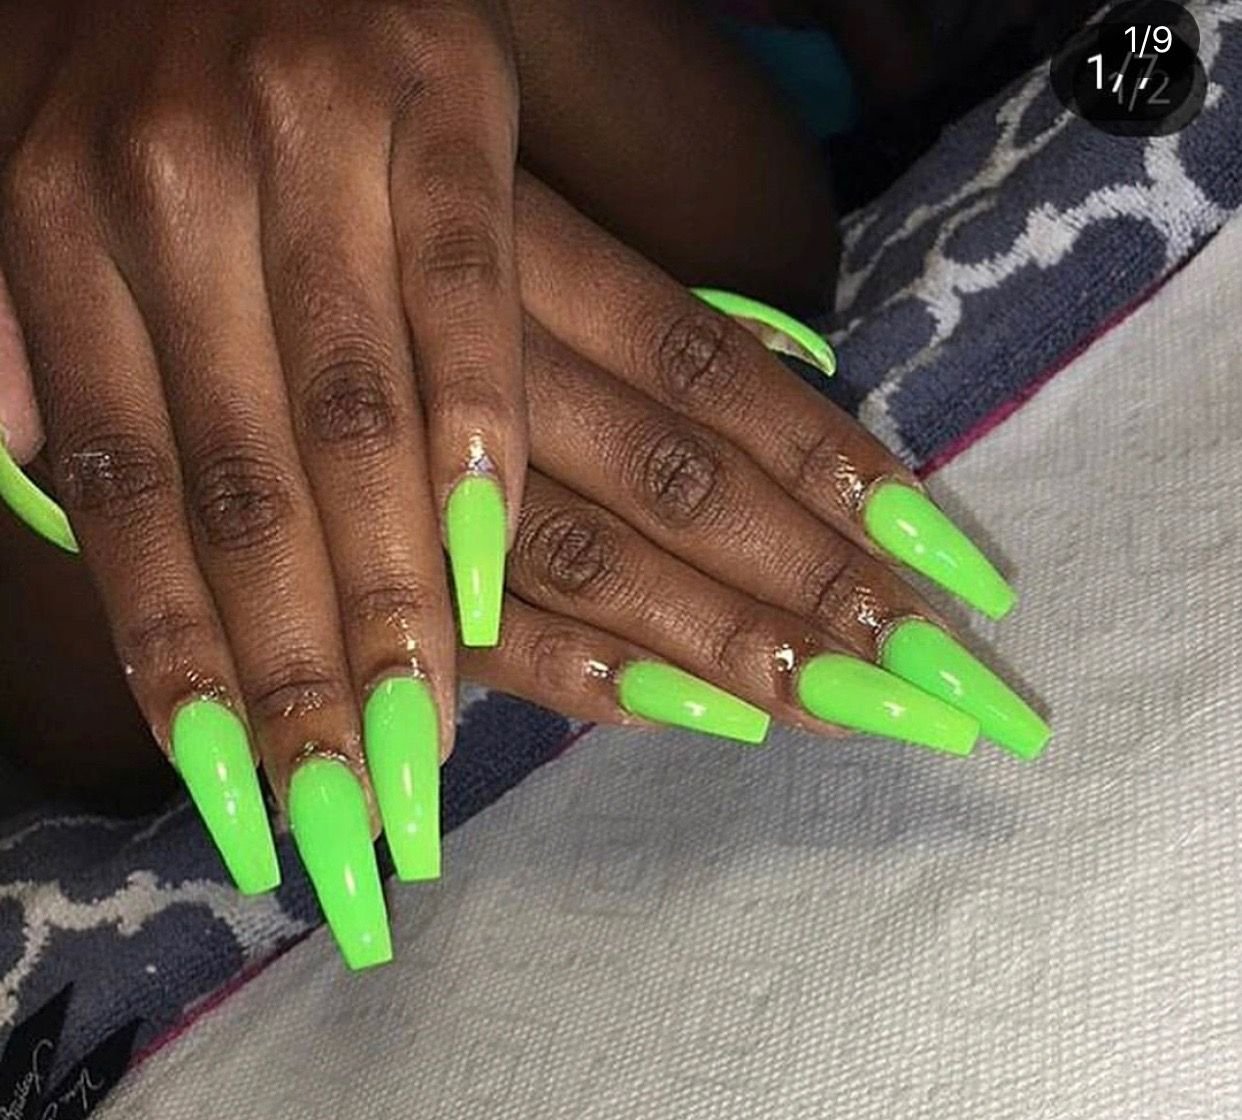 Pin by Sophia Wells on CLAWS✨   Pinterest   Nail inspo, Makeup and ...